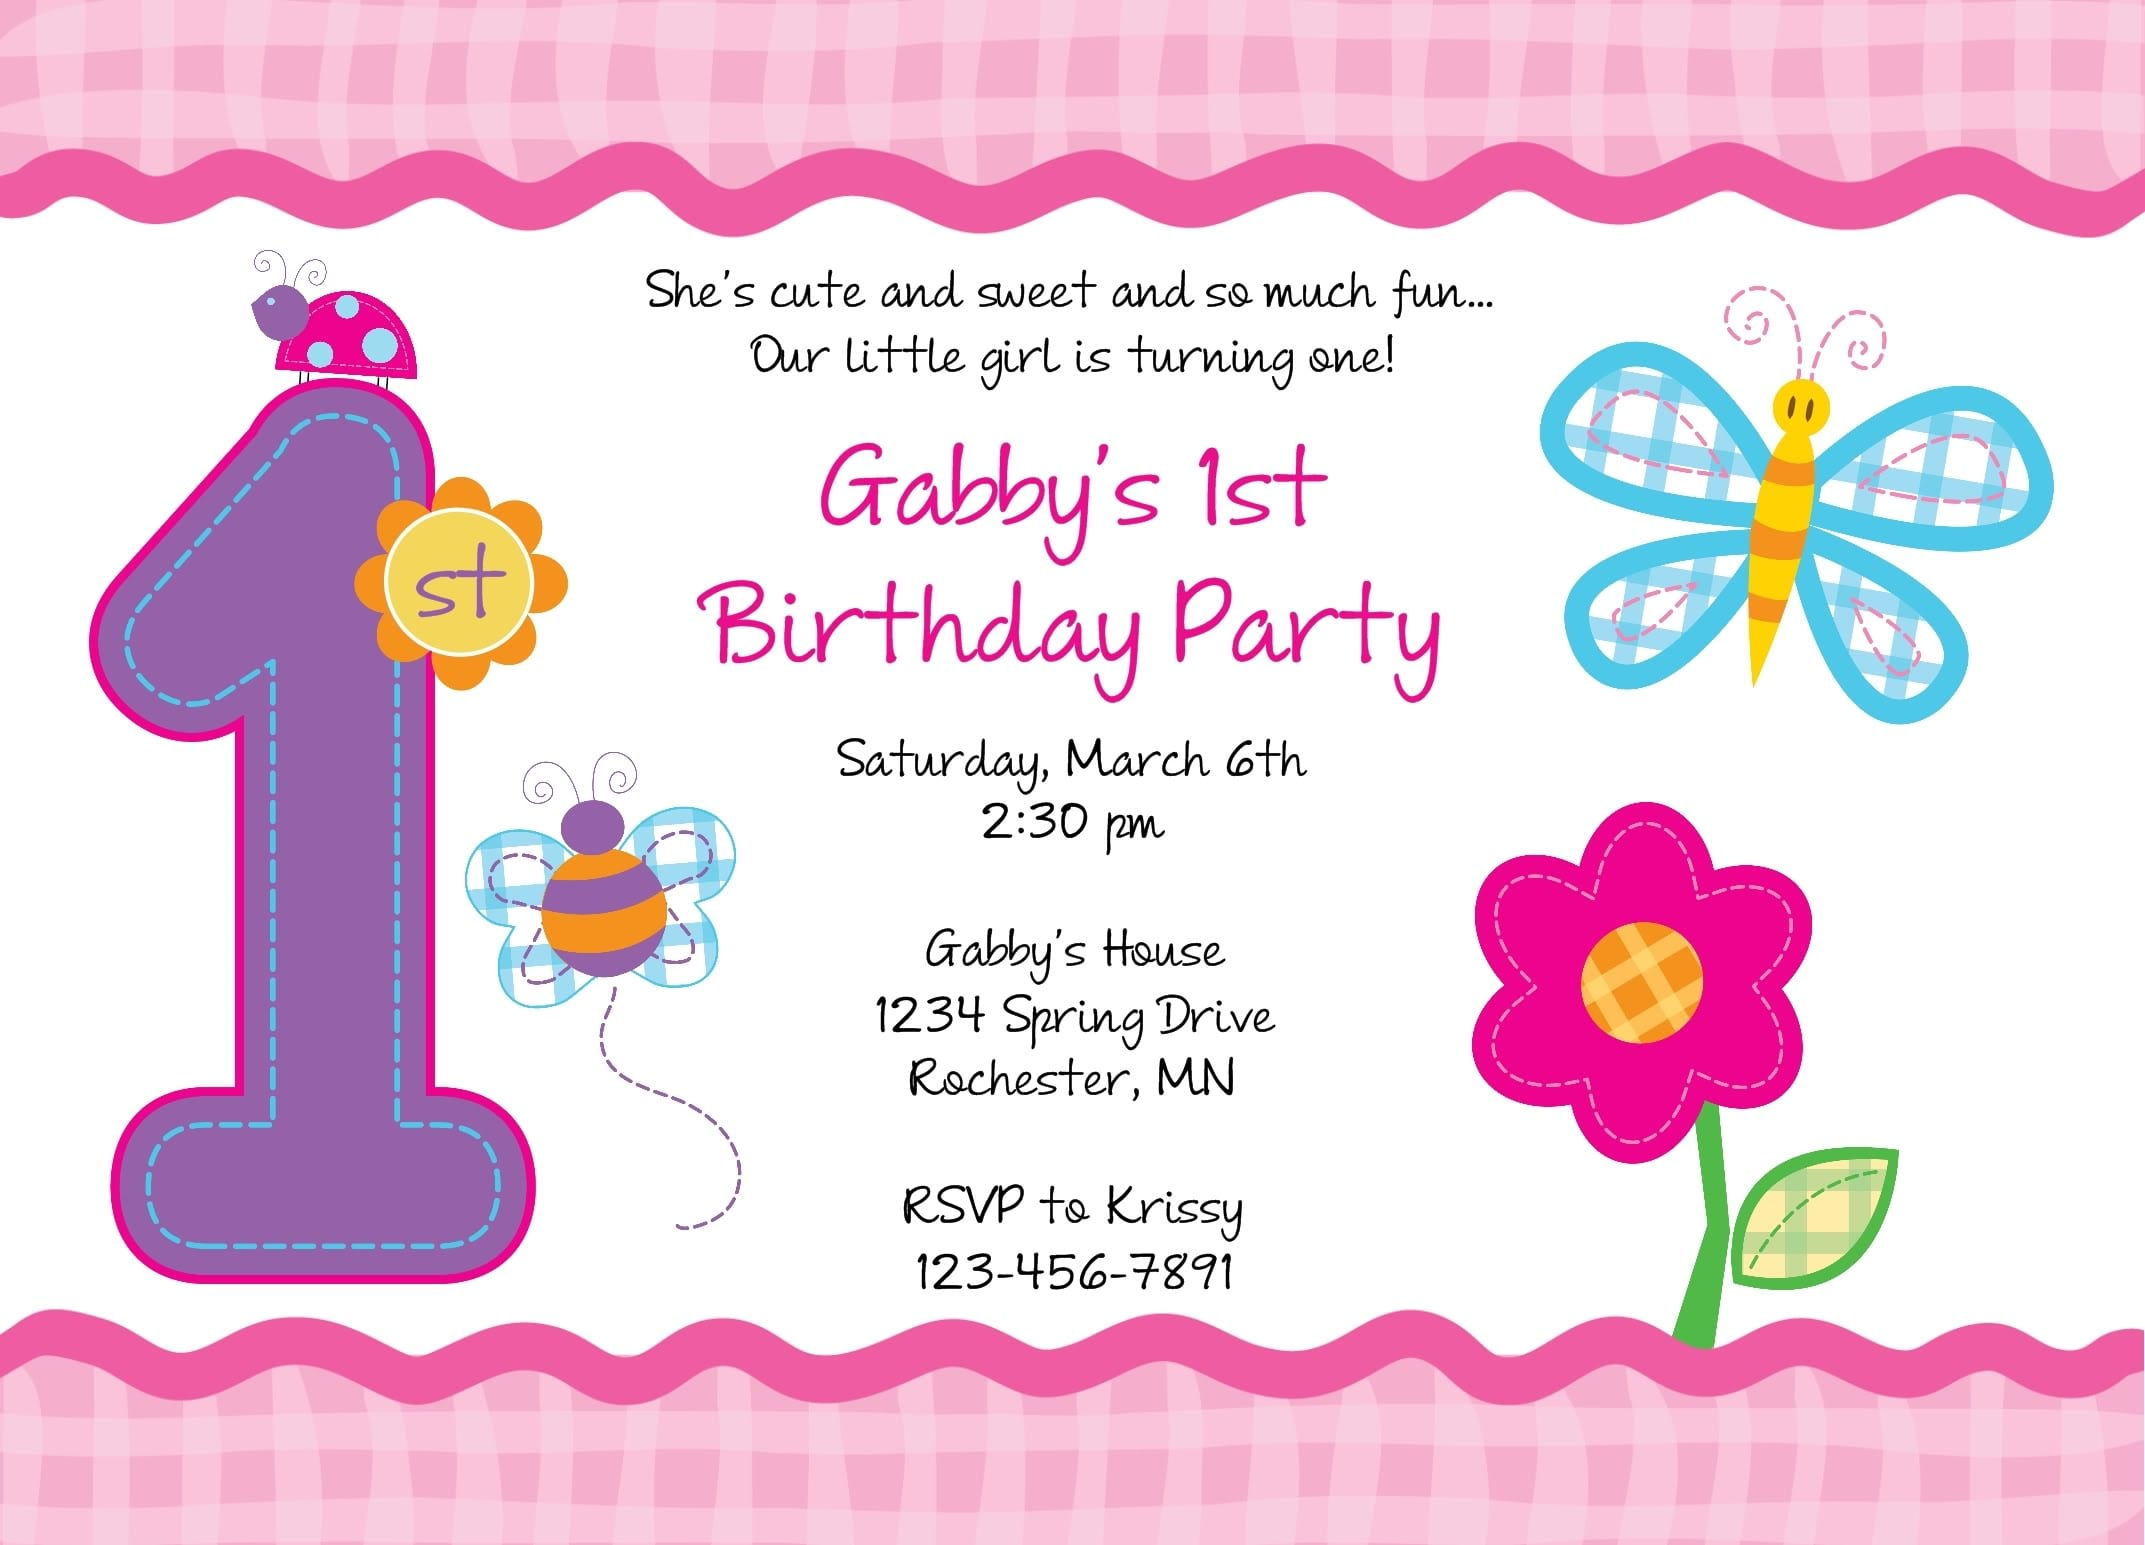 Birthday Invitation Maker gangcraftnet – Birthday Invitation Maker